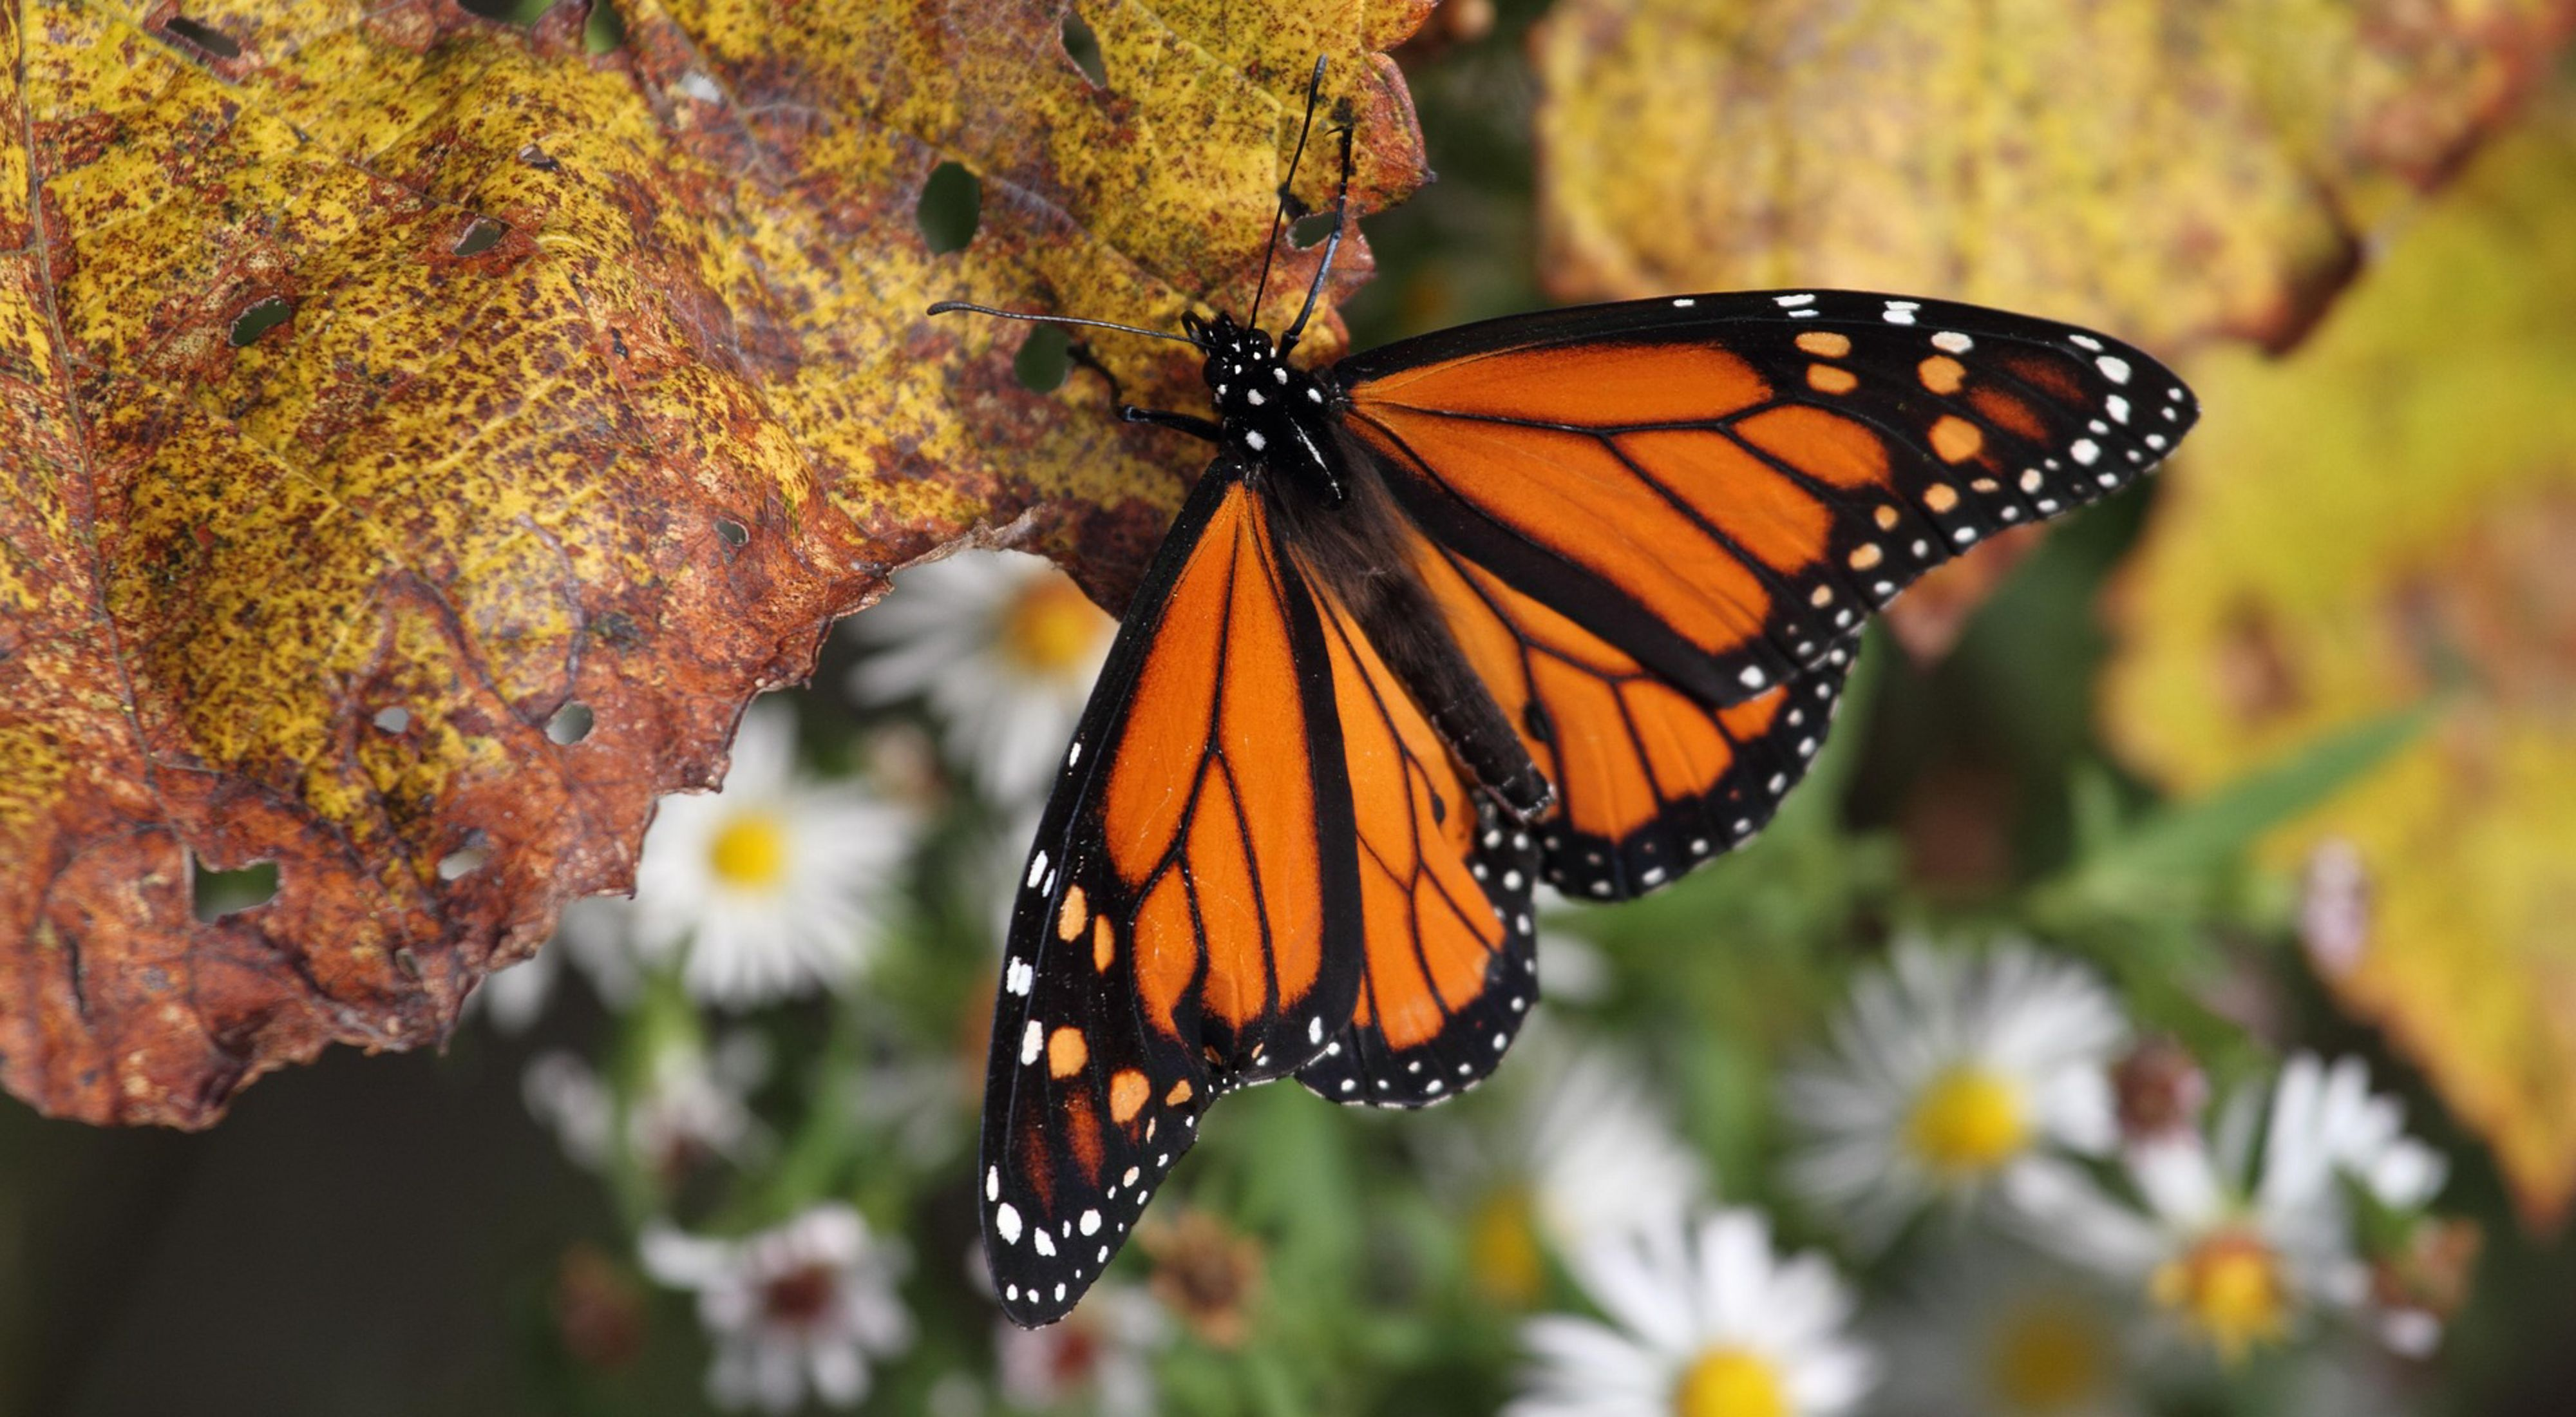 monarchs are widely recognized by their orange and black wings